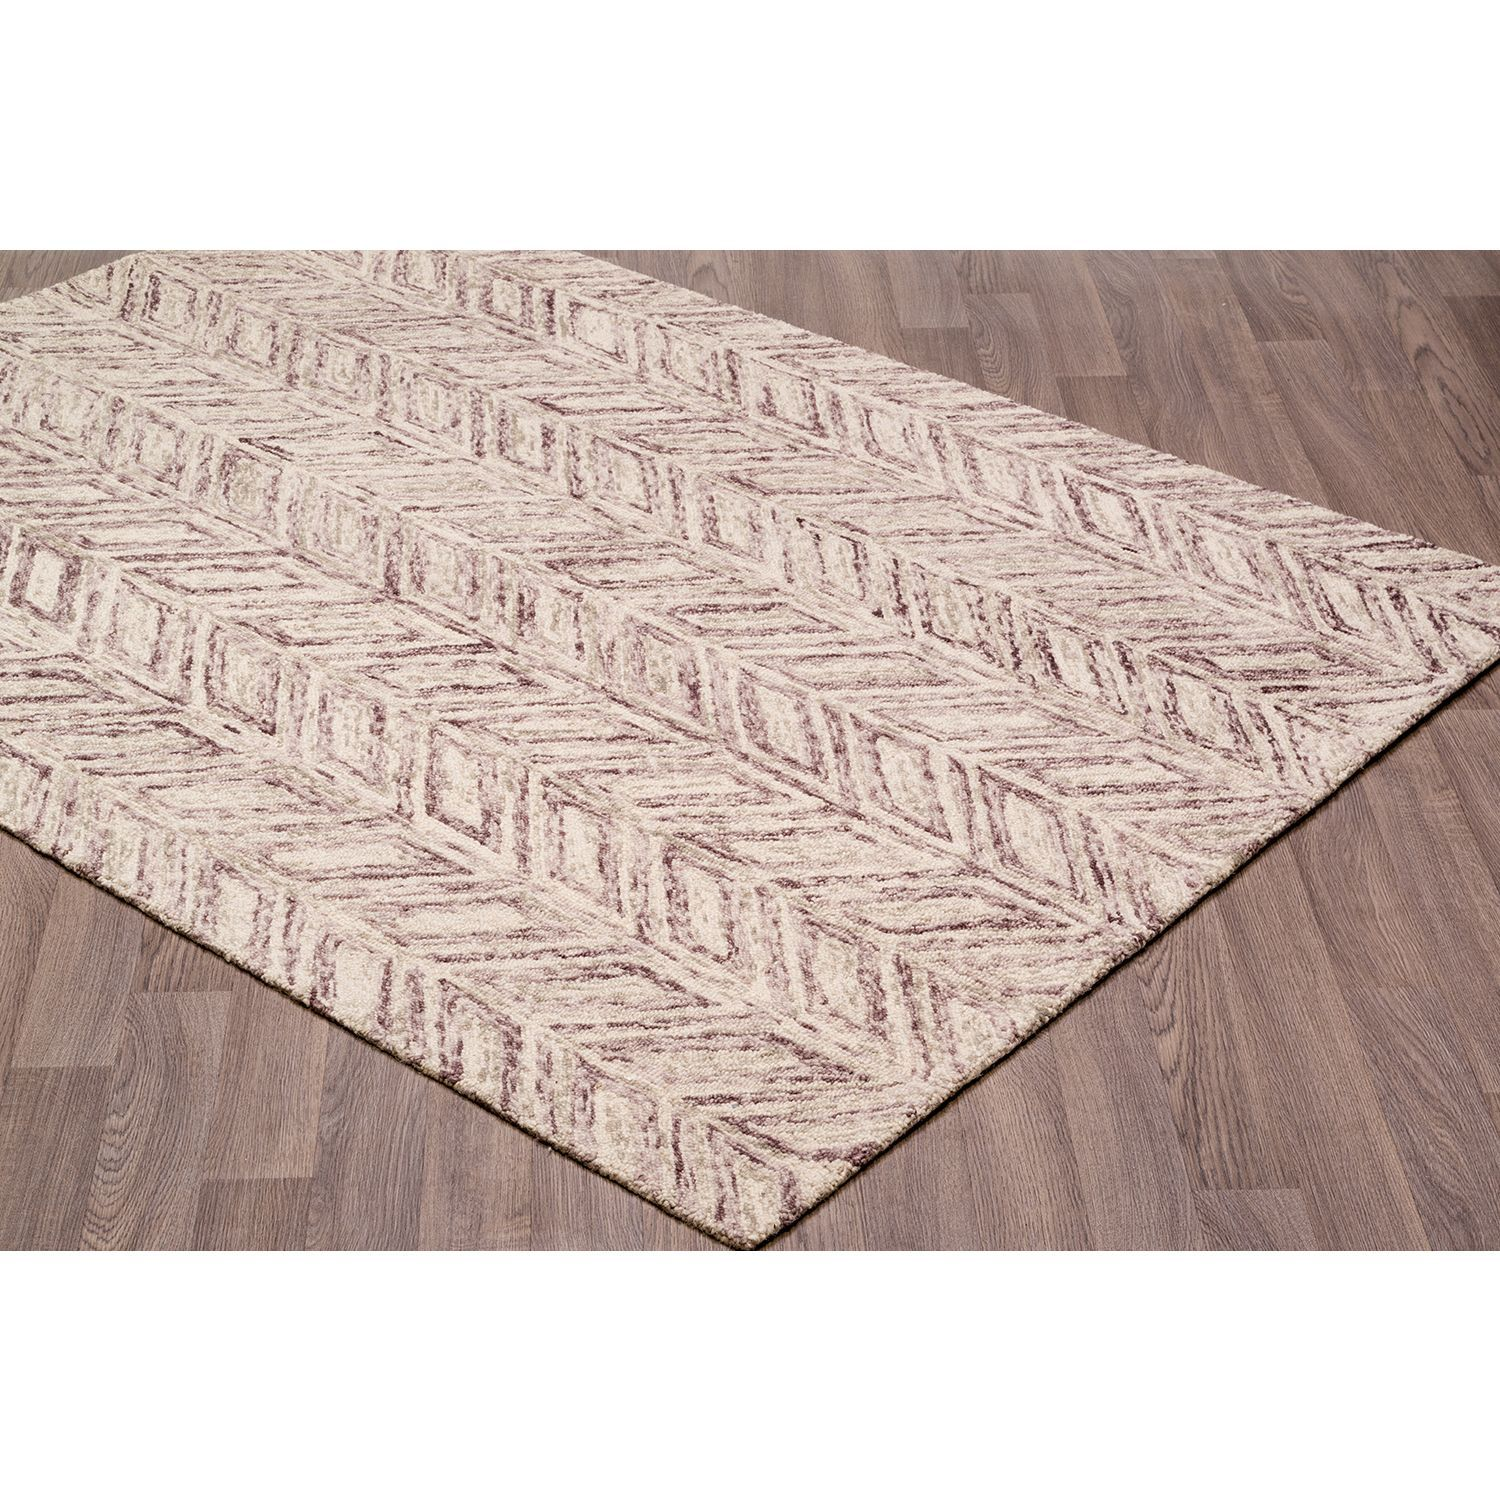 Contemporary Vines Plum Brown Wool Chevron Handmade Rug 7 6 X 9 6